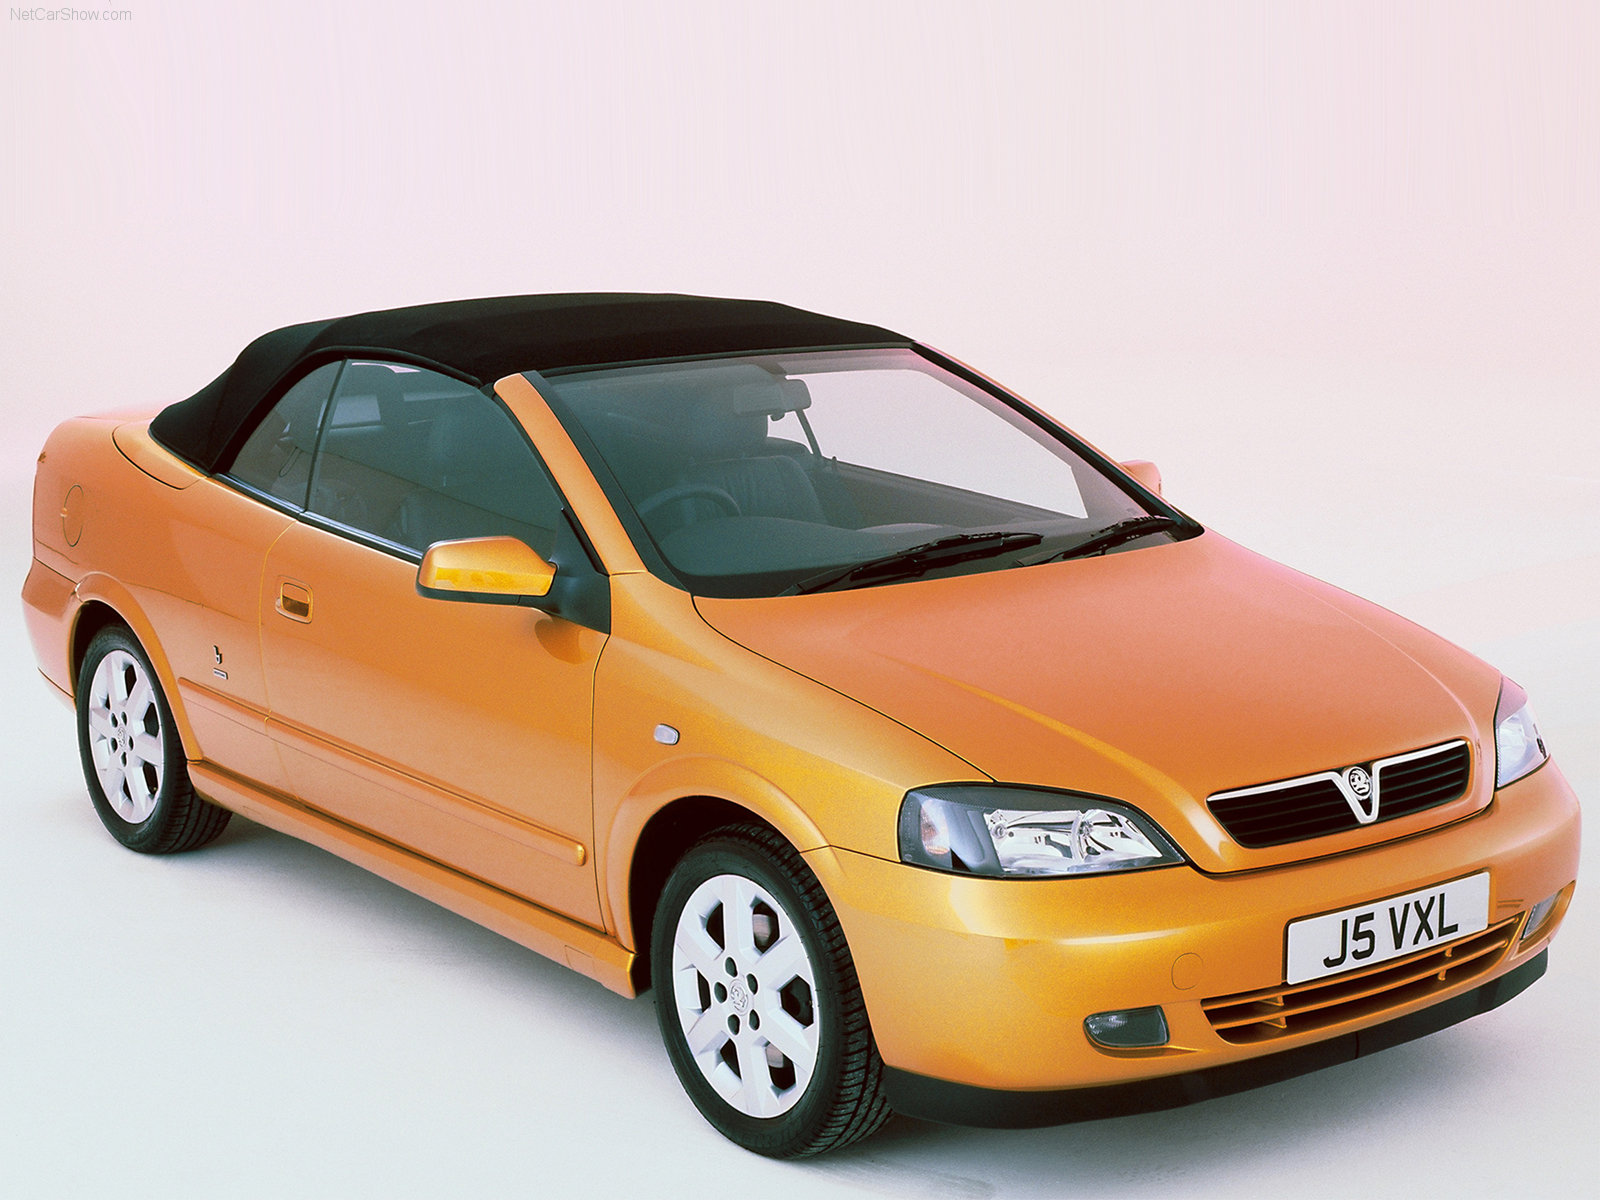 vauxhall astra convertible photos photogallery with 5 pics. Black Bedroom Furniture Sets. Home Design Ideas